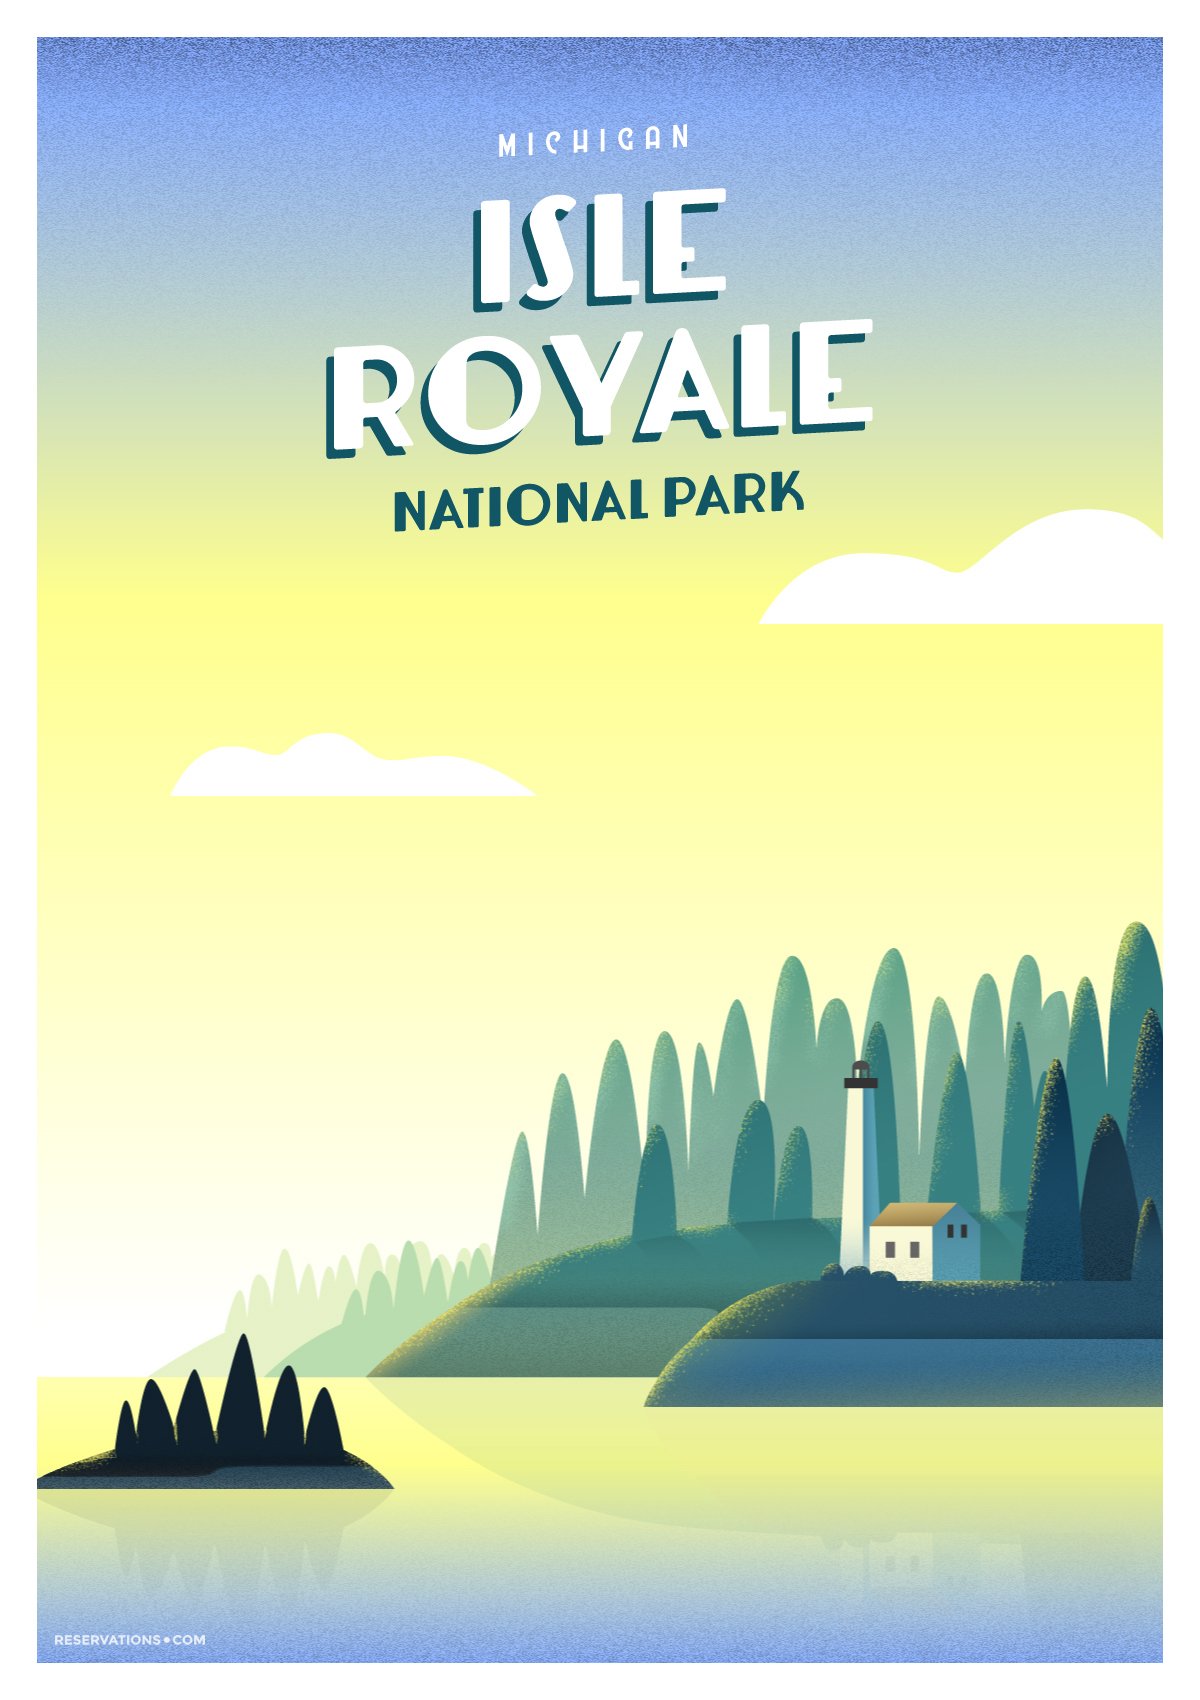 Vintage poster depicts Isle Royale, one of America's least visited national parks